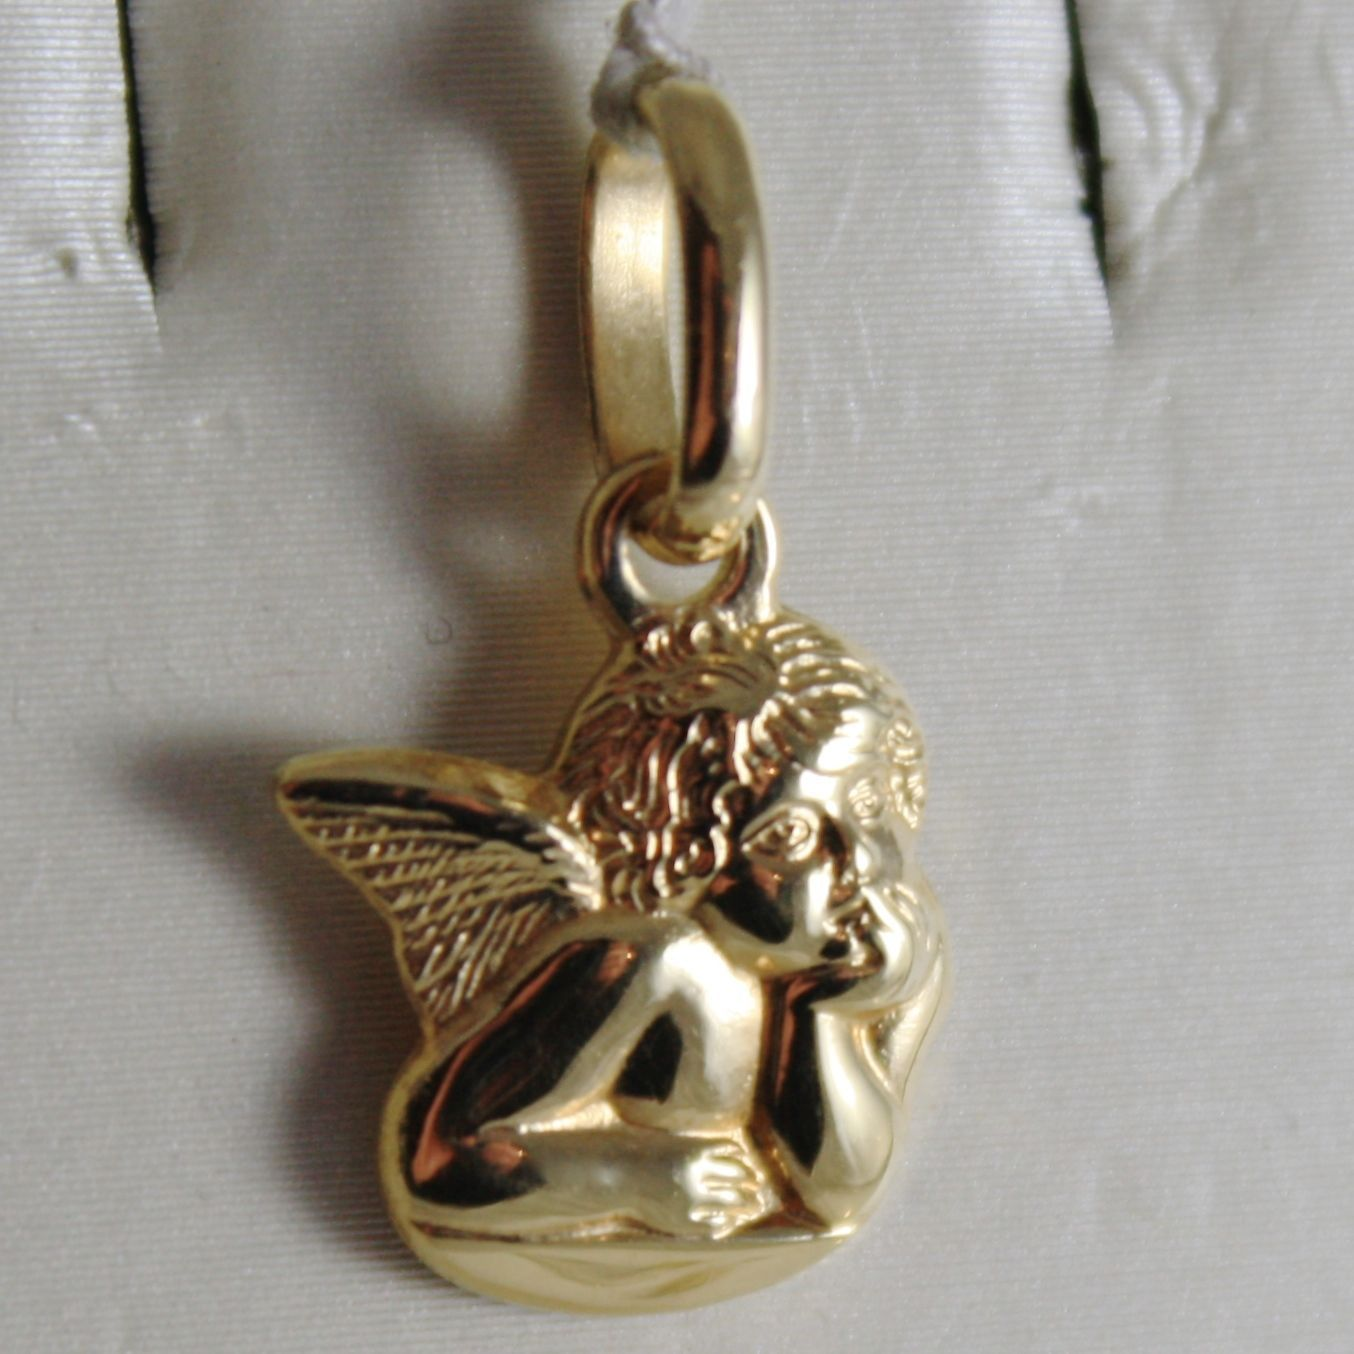 SOLID 18K YELLOW GOLD PENDANT, LITTLE GUARDIAN ANGEL, ENGRAVING, MADE IN ITALY